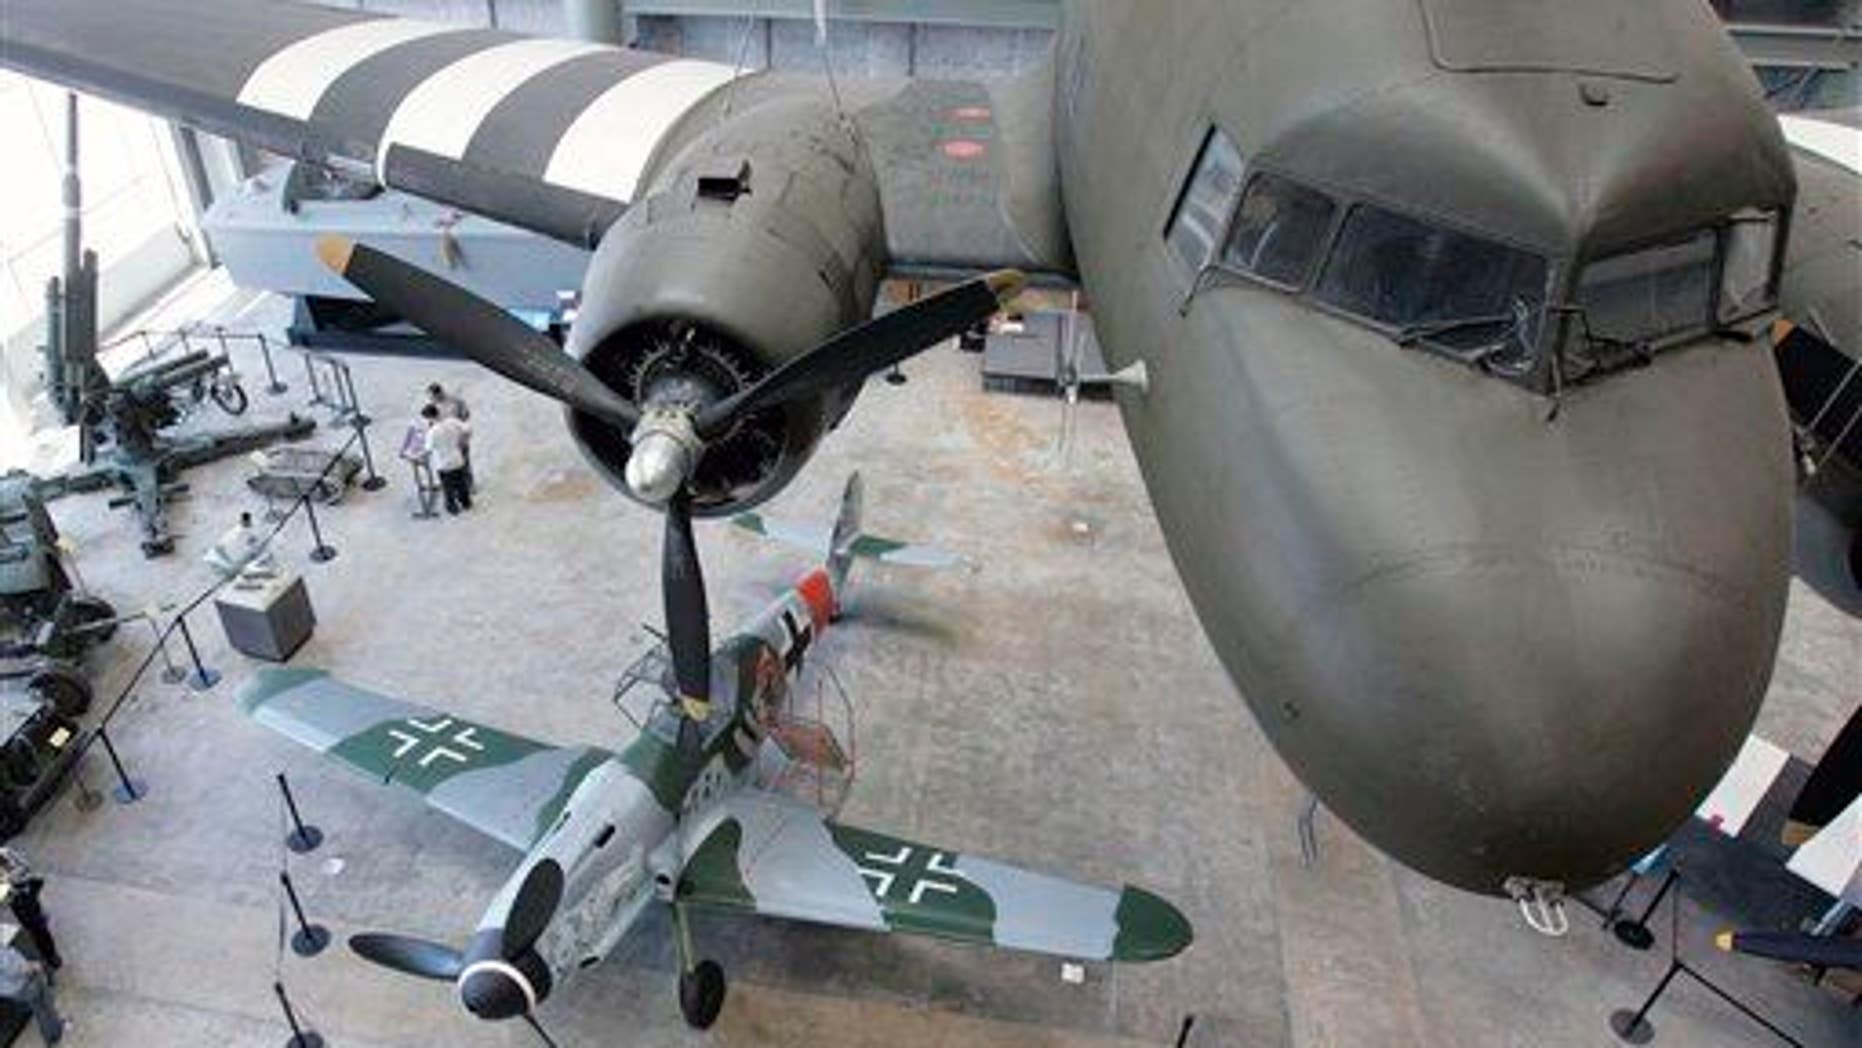 In this 2008 file photo, a German Messerschmitt Bf 109 sits beneath an American C-47 transport aircraft on display at the National World War II Museum in New Orleans.